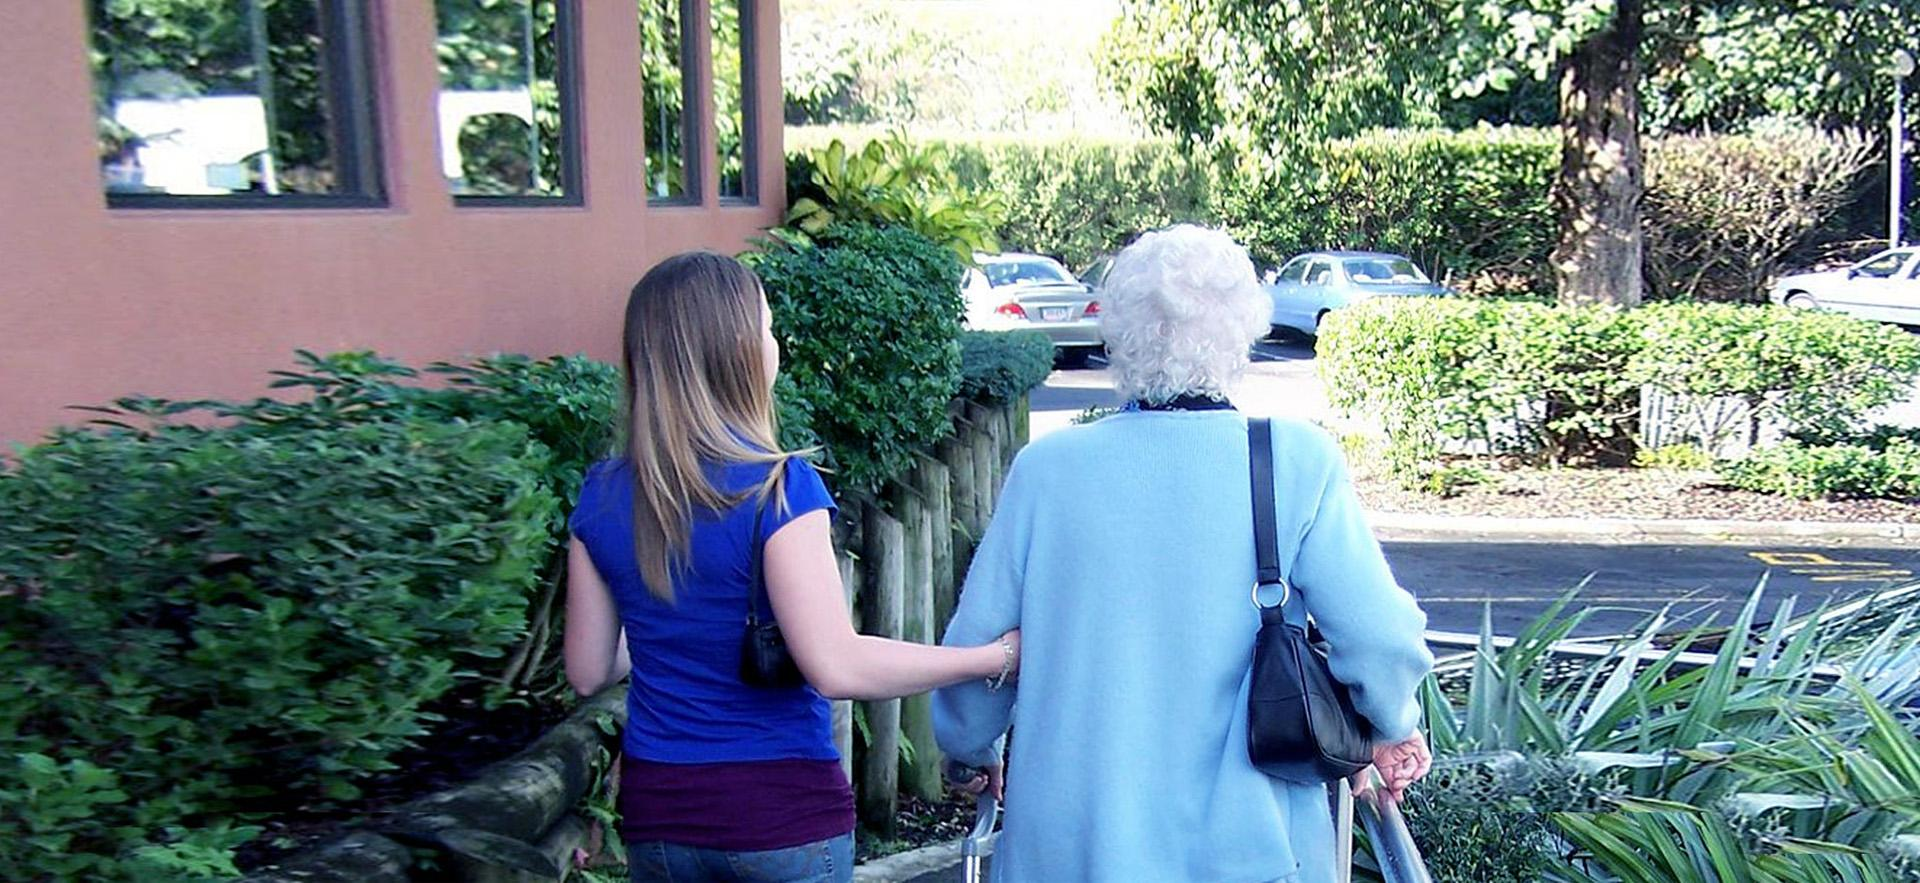 A young female helps an elderly woman walk down a sidewalk.